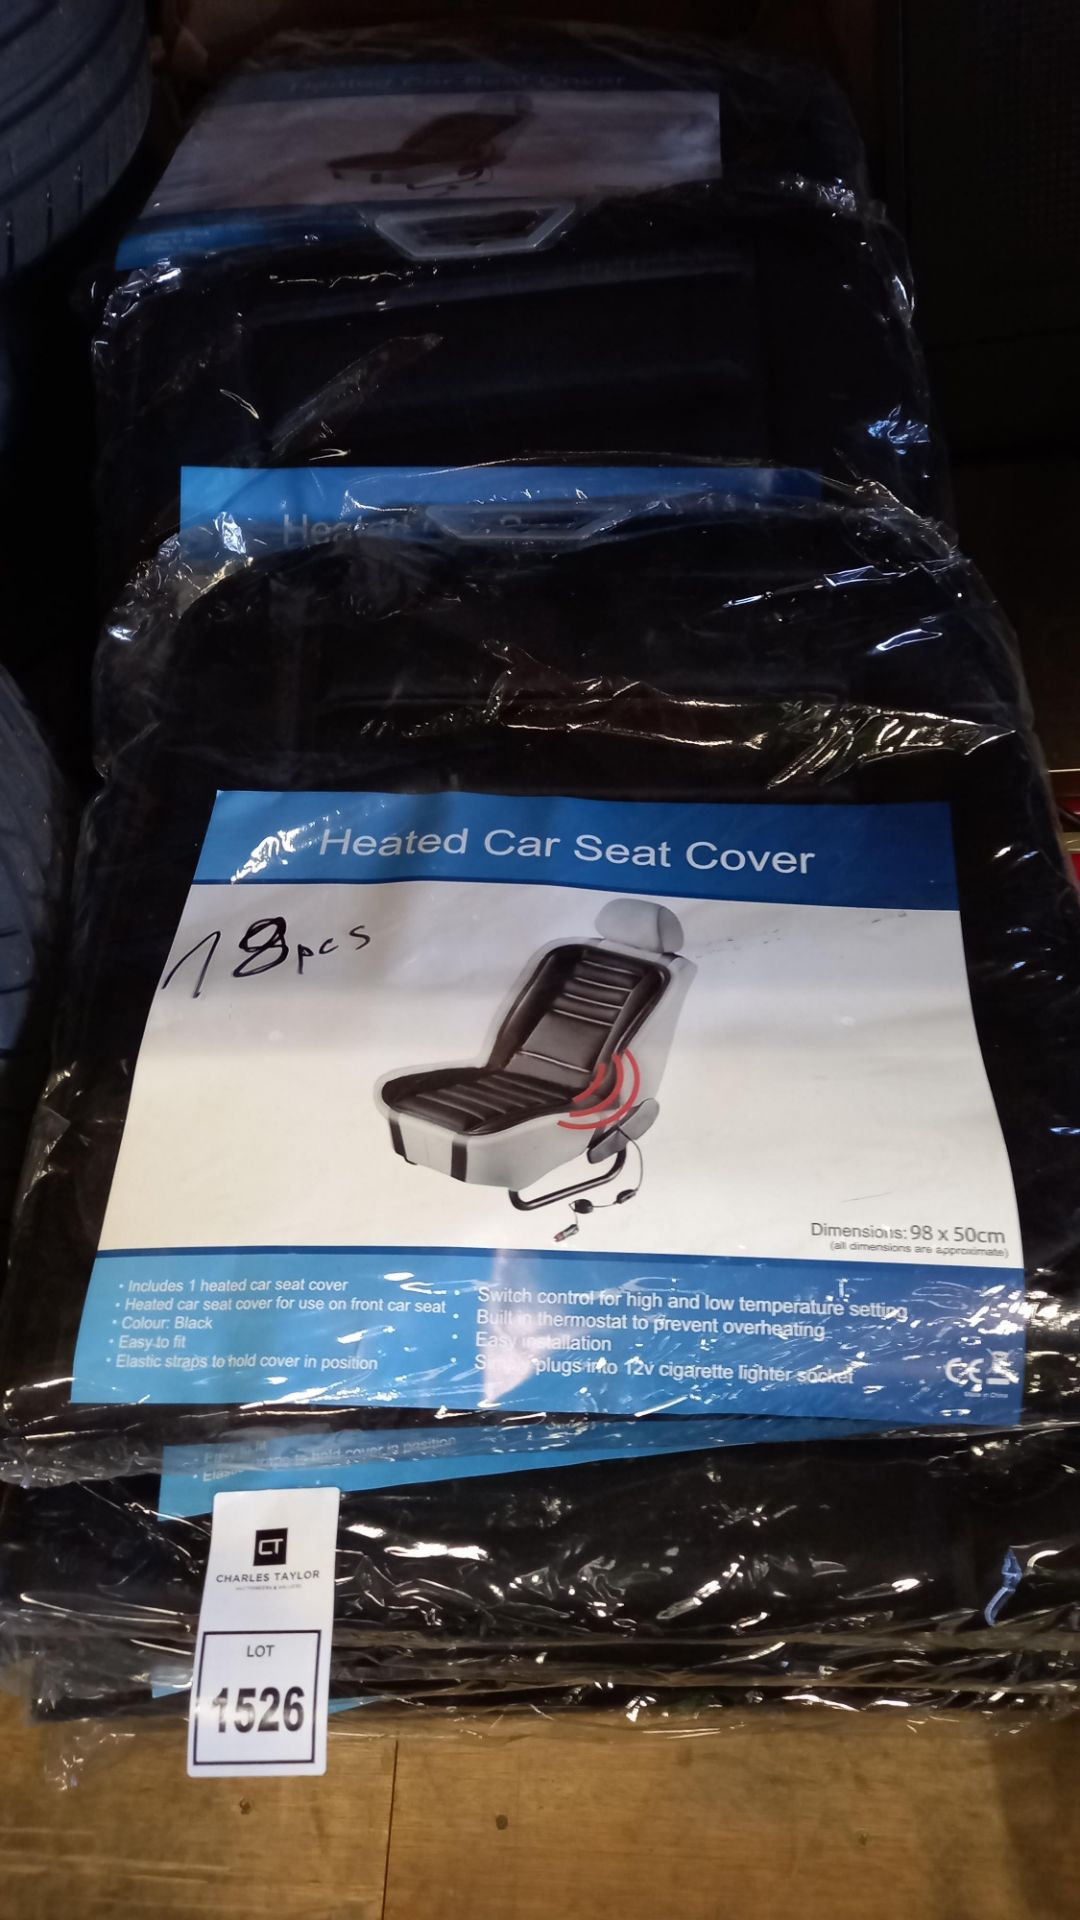 18 X BRAND NEW HEATED CAR SEAT COVER (98 X 50CM)